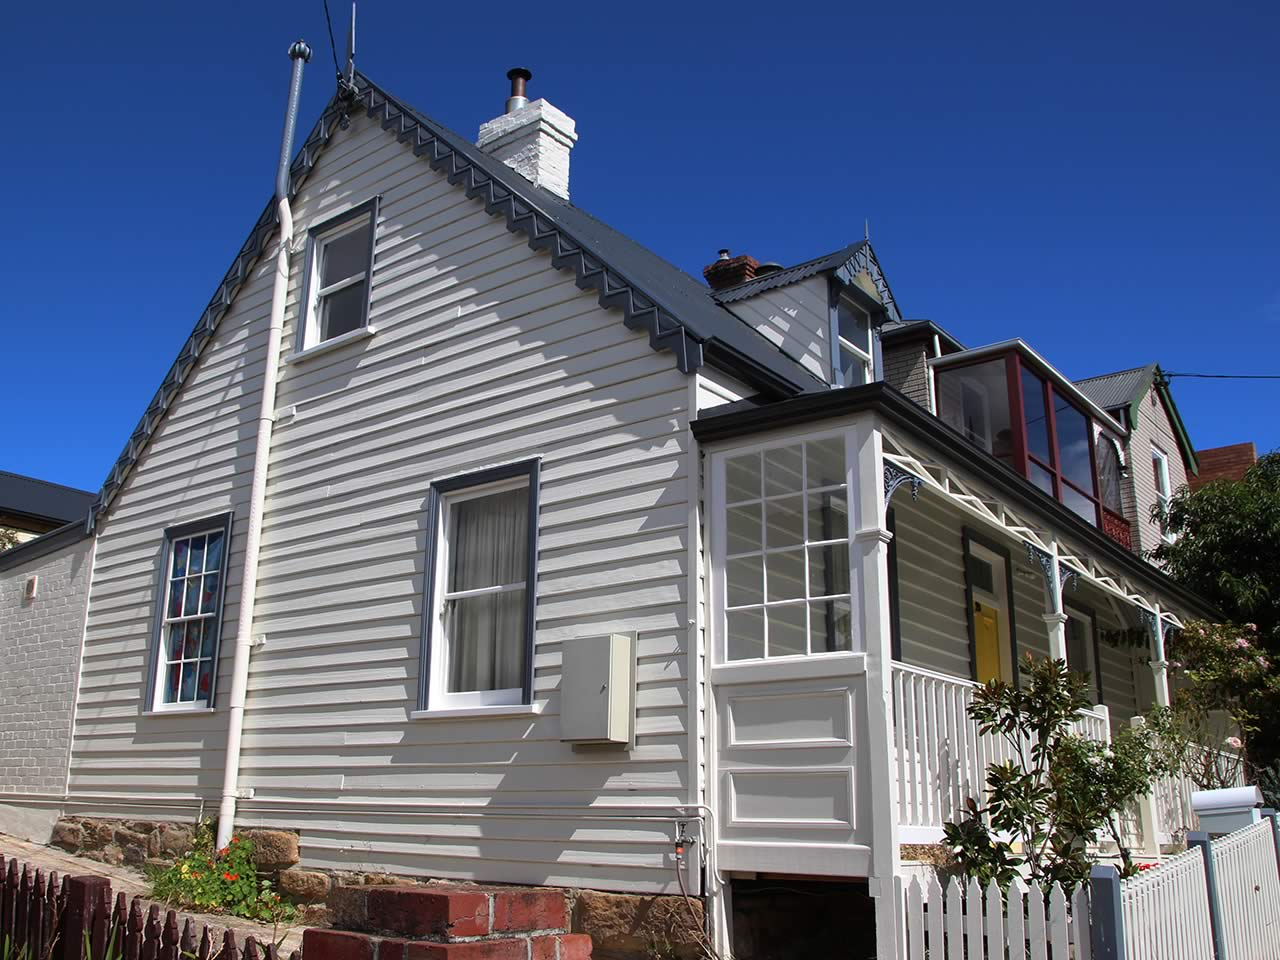 House Painters Hobart 28 Images House Painting Services R Tl Tatnell Painters Pty Ltd Hobart